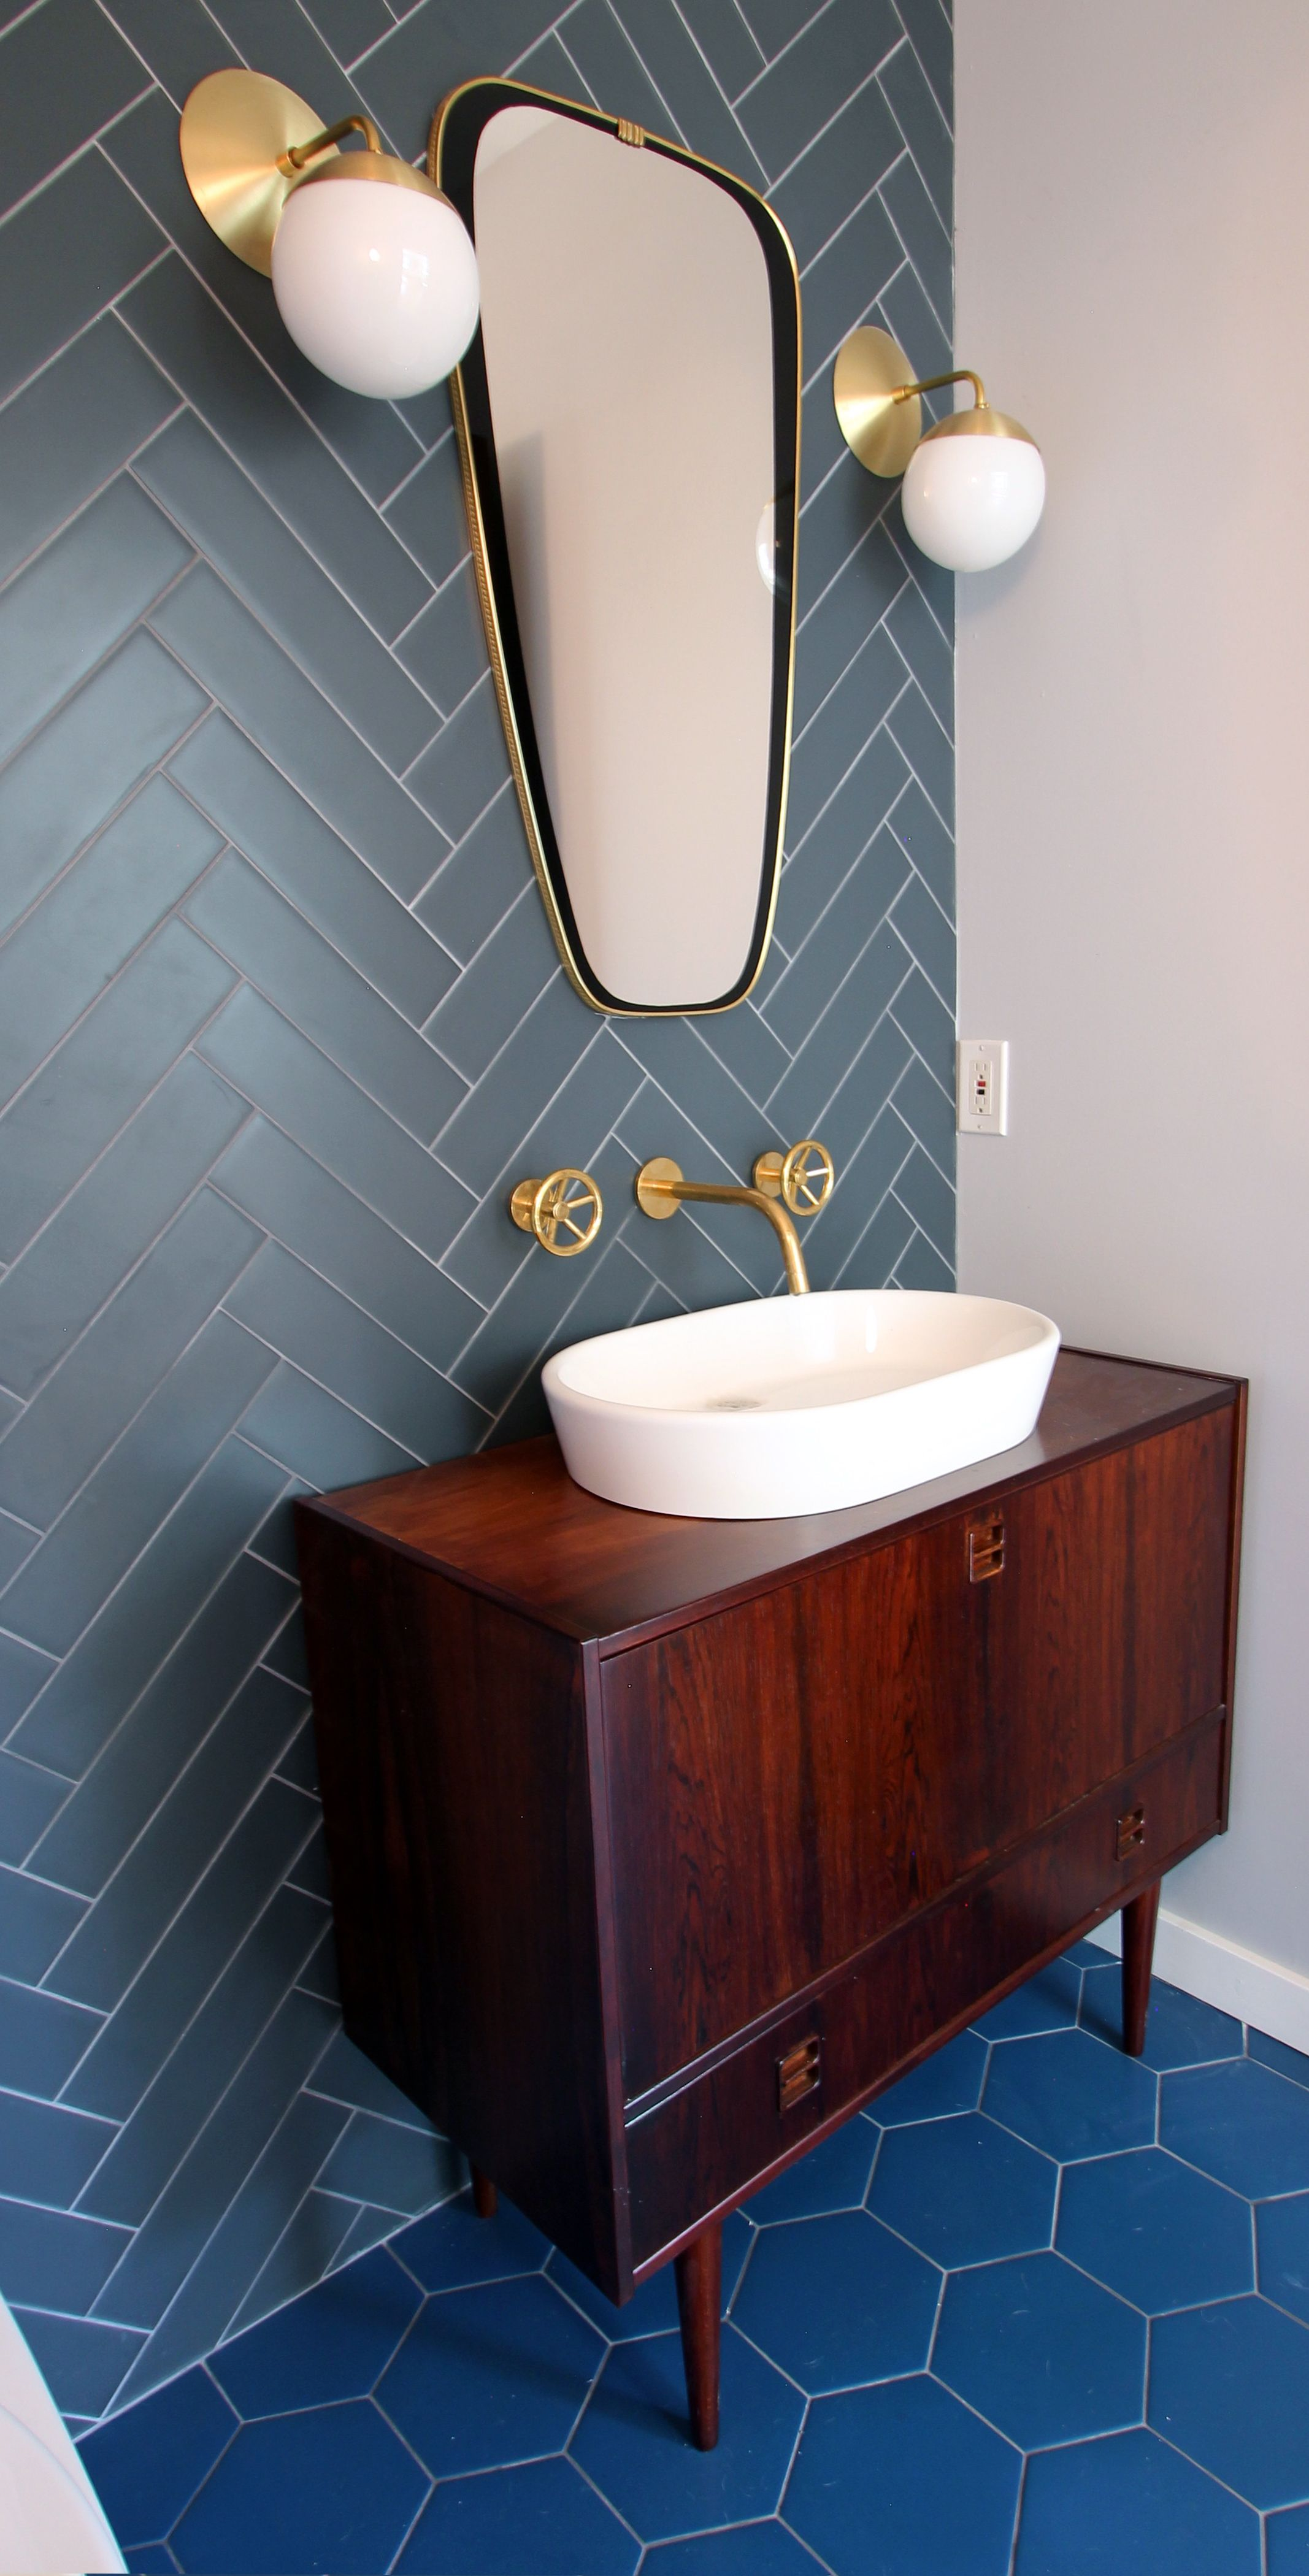 Design and construction project management of a high end powder room featuring a vintage